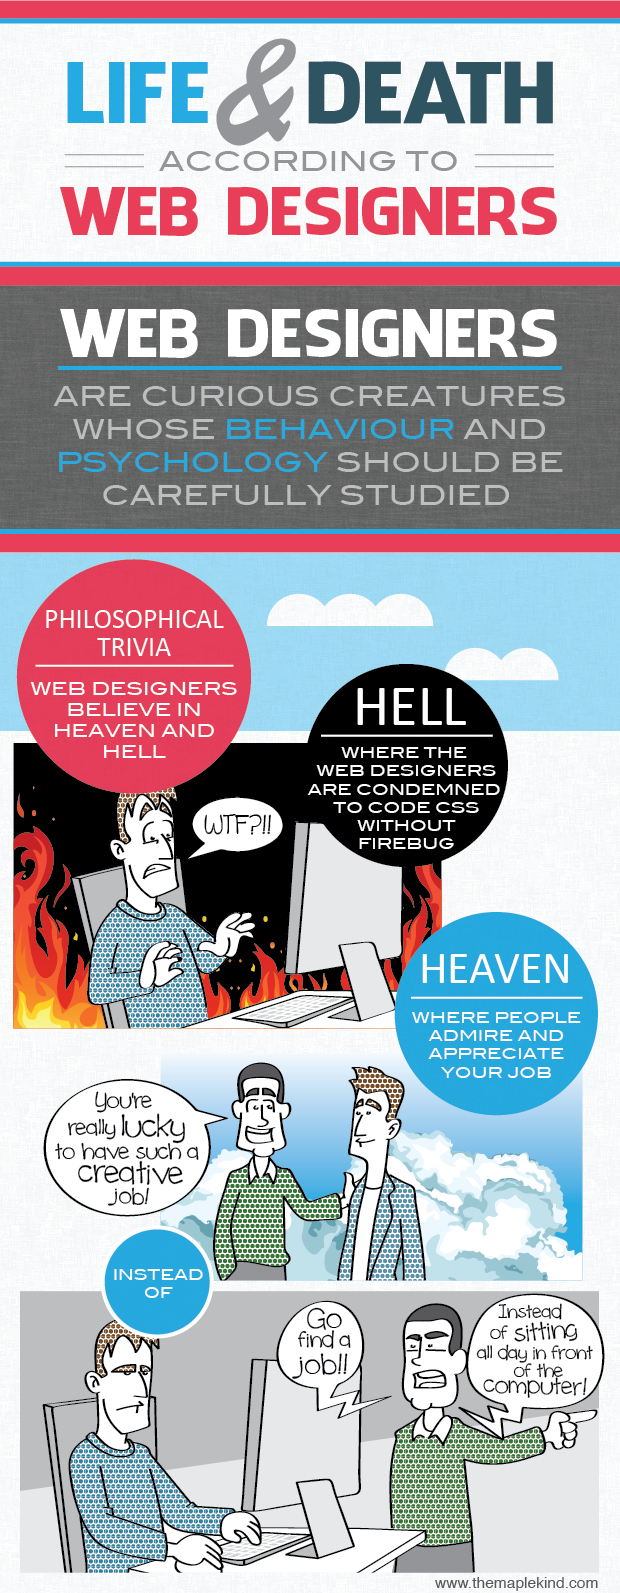 life and death web designers 01 Life and Death According to Web Designers [Infographic]